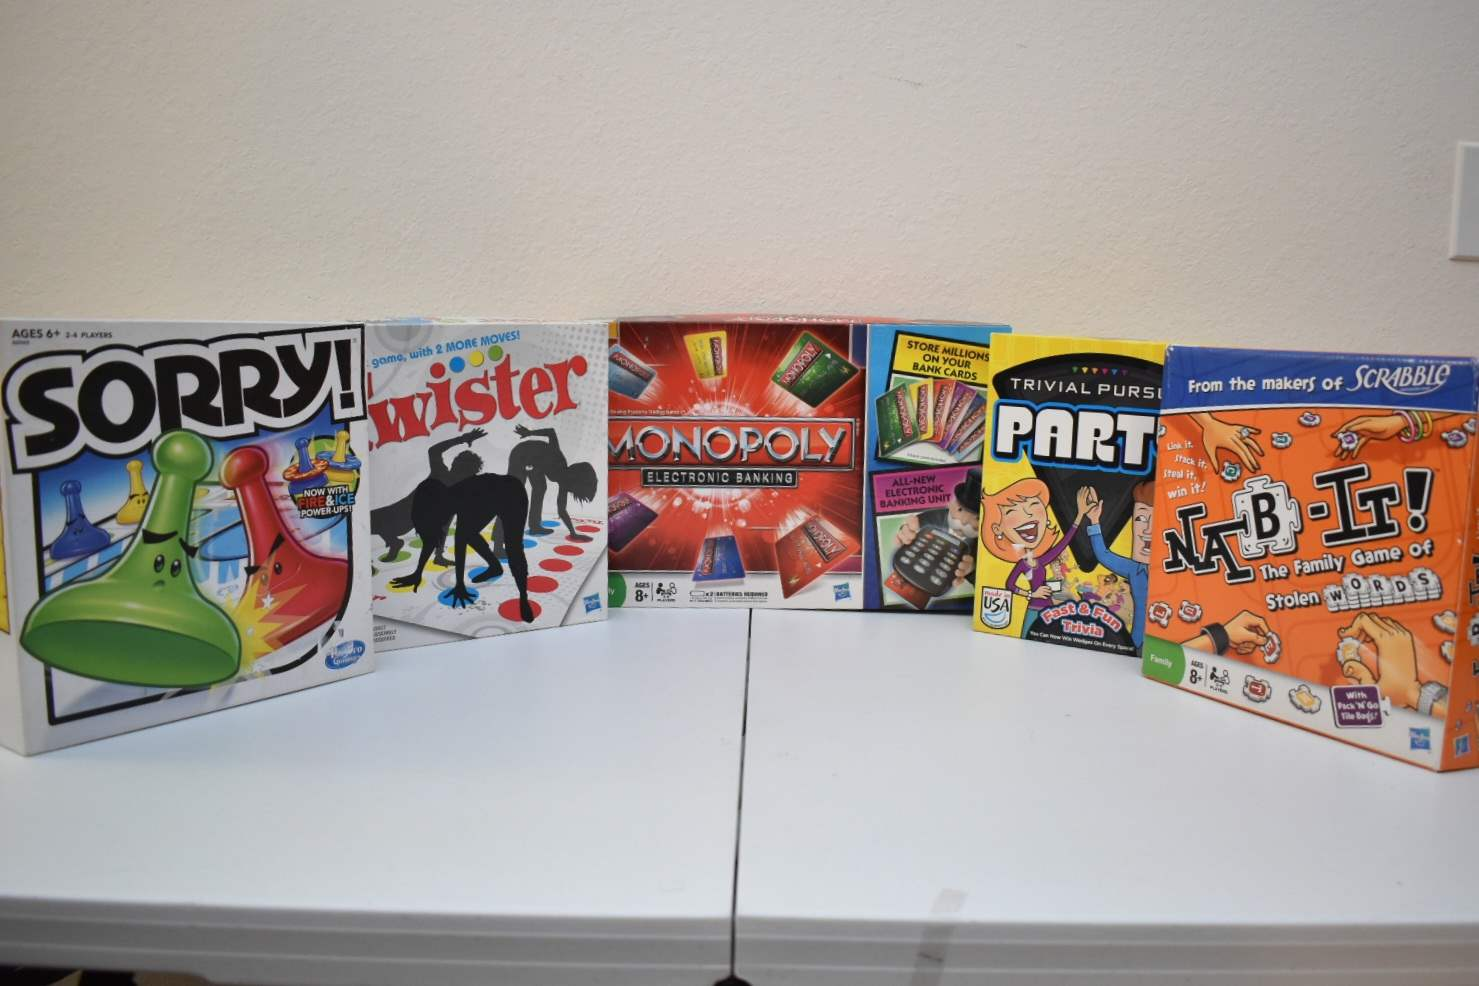 Board Games: Electronic Monopoly, Nab-It, Sorry, Twister, Trivial Pursuit Party